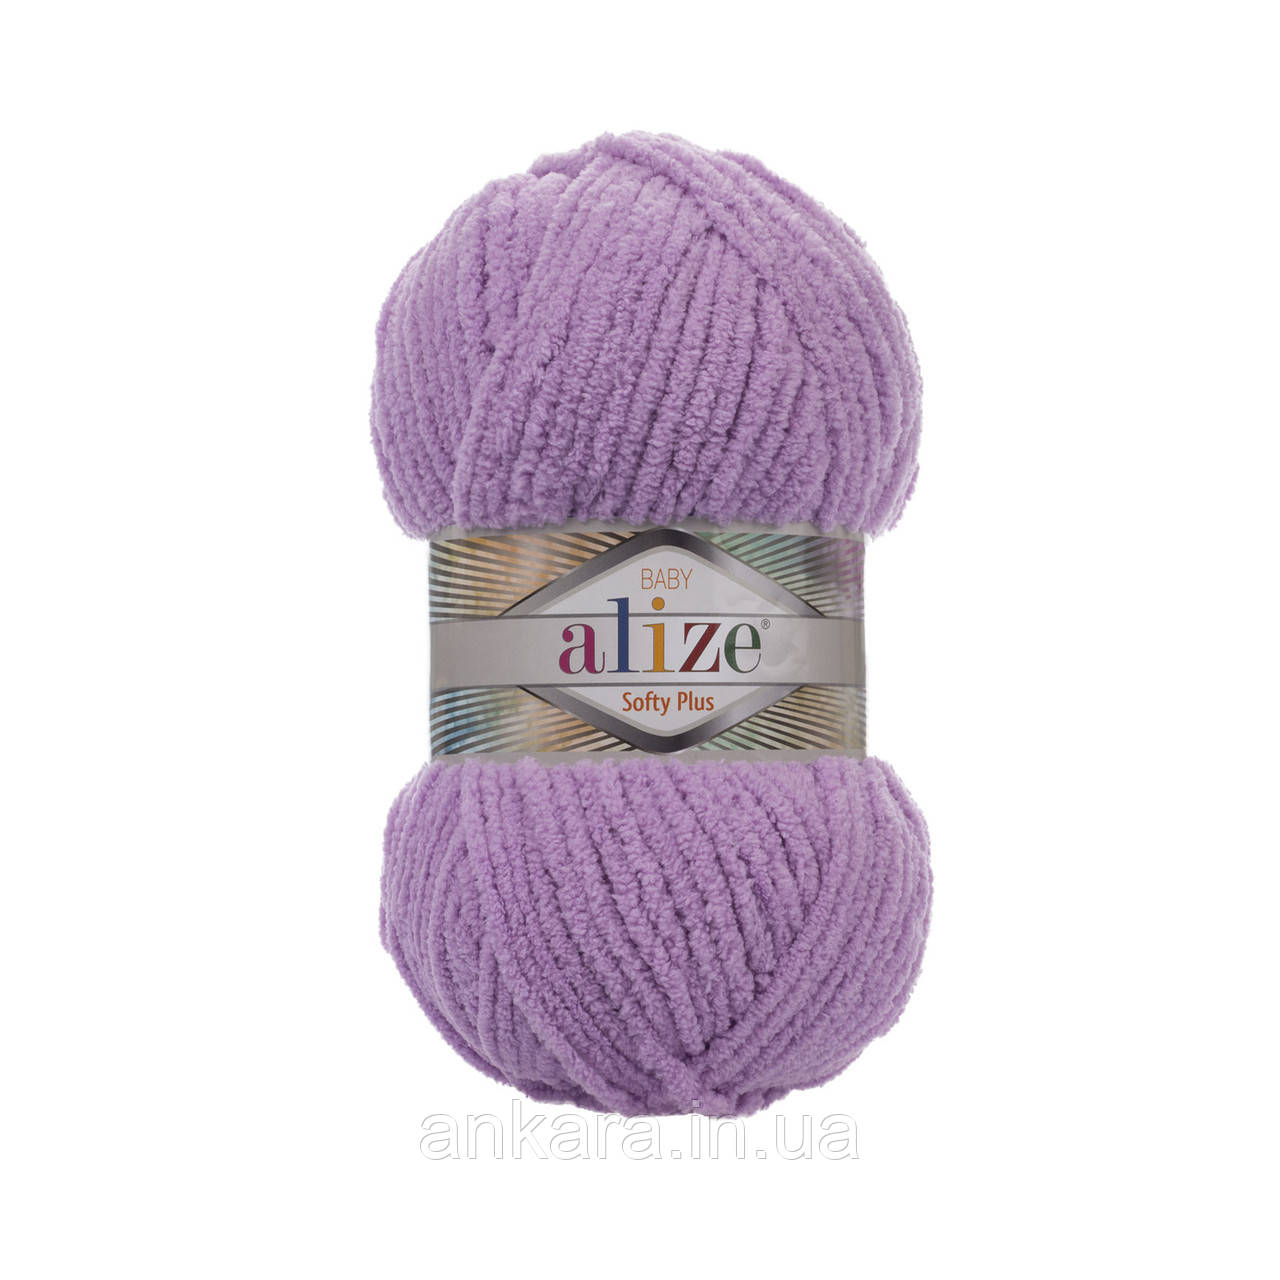 Пряжа  Alize Softy Plus 47